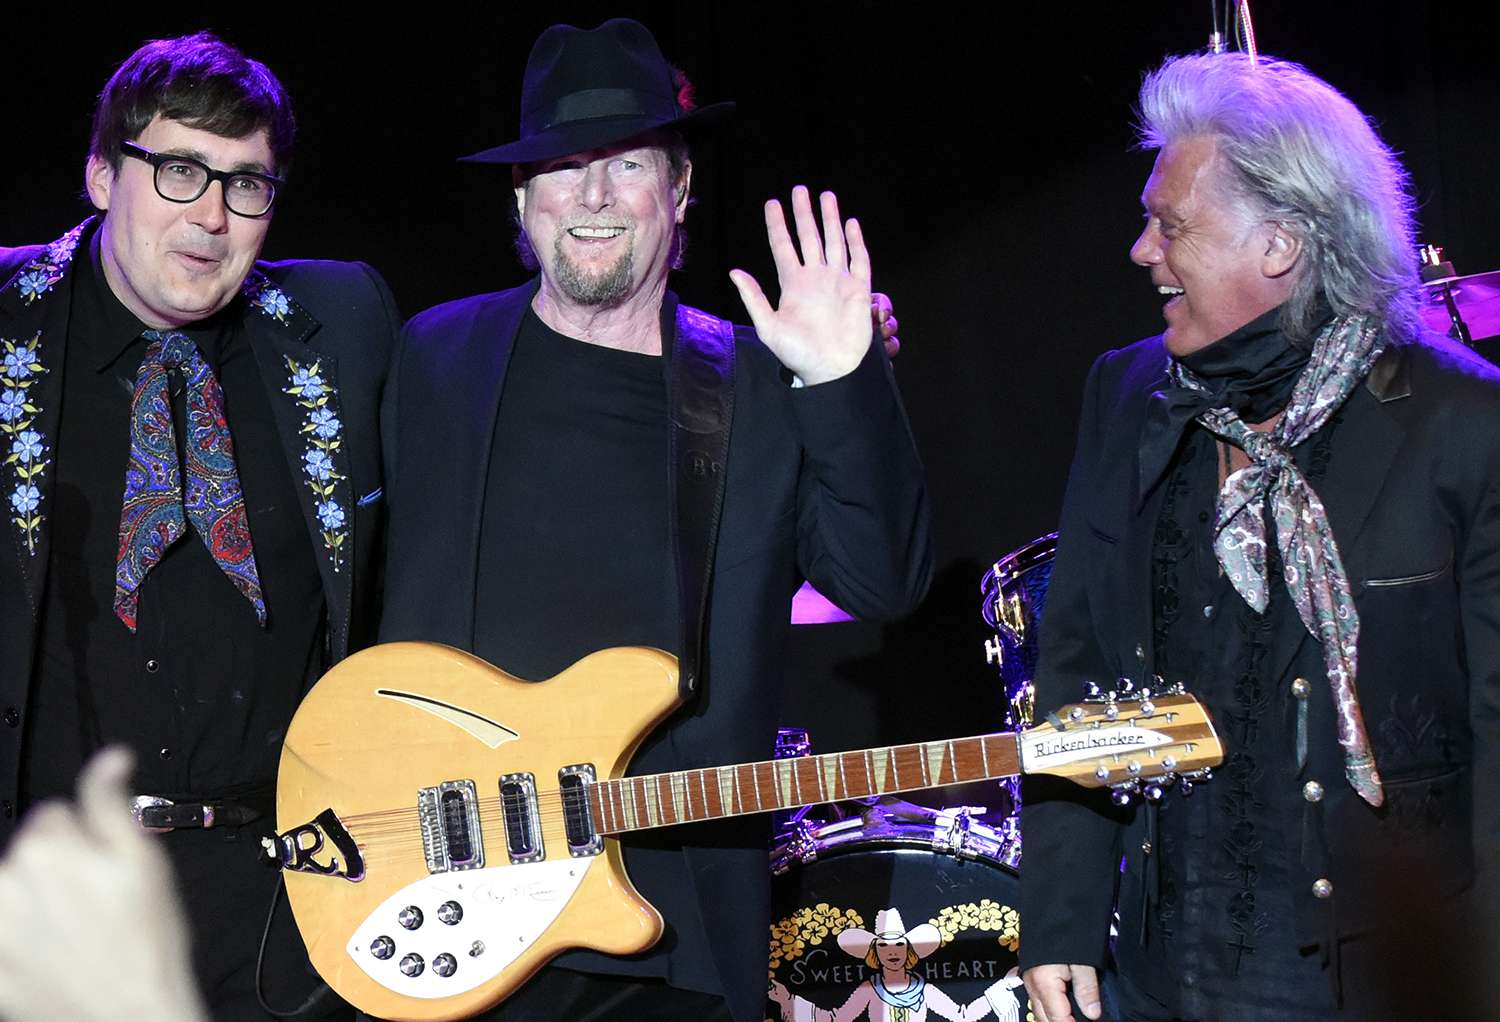 Chris Scruggs, Roger McGuinn, and Marty Stuart perform during the Sweetheart of the Rodeo Reunion